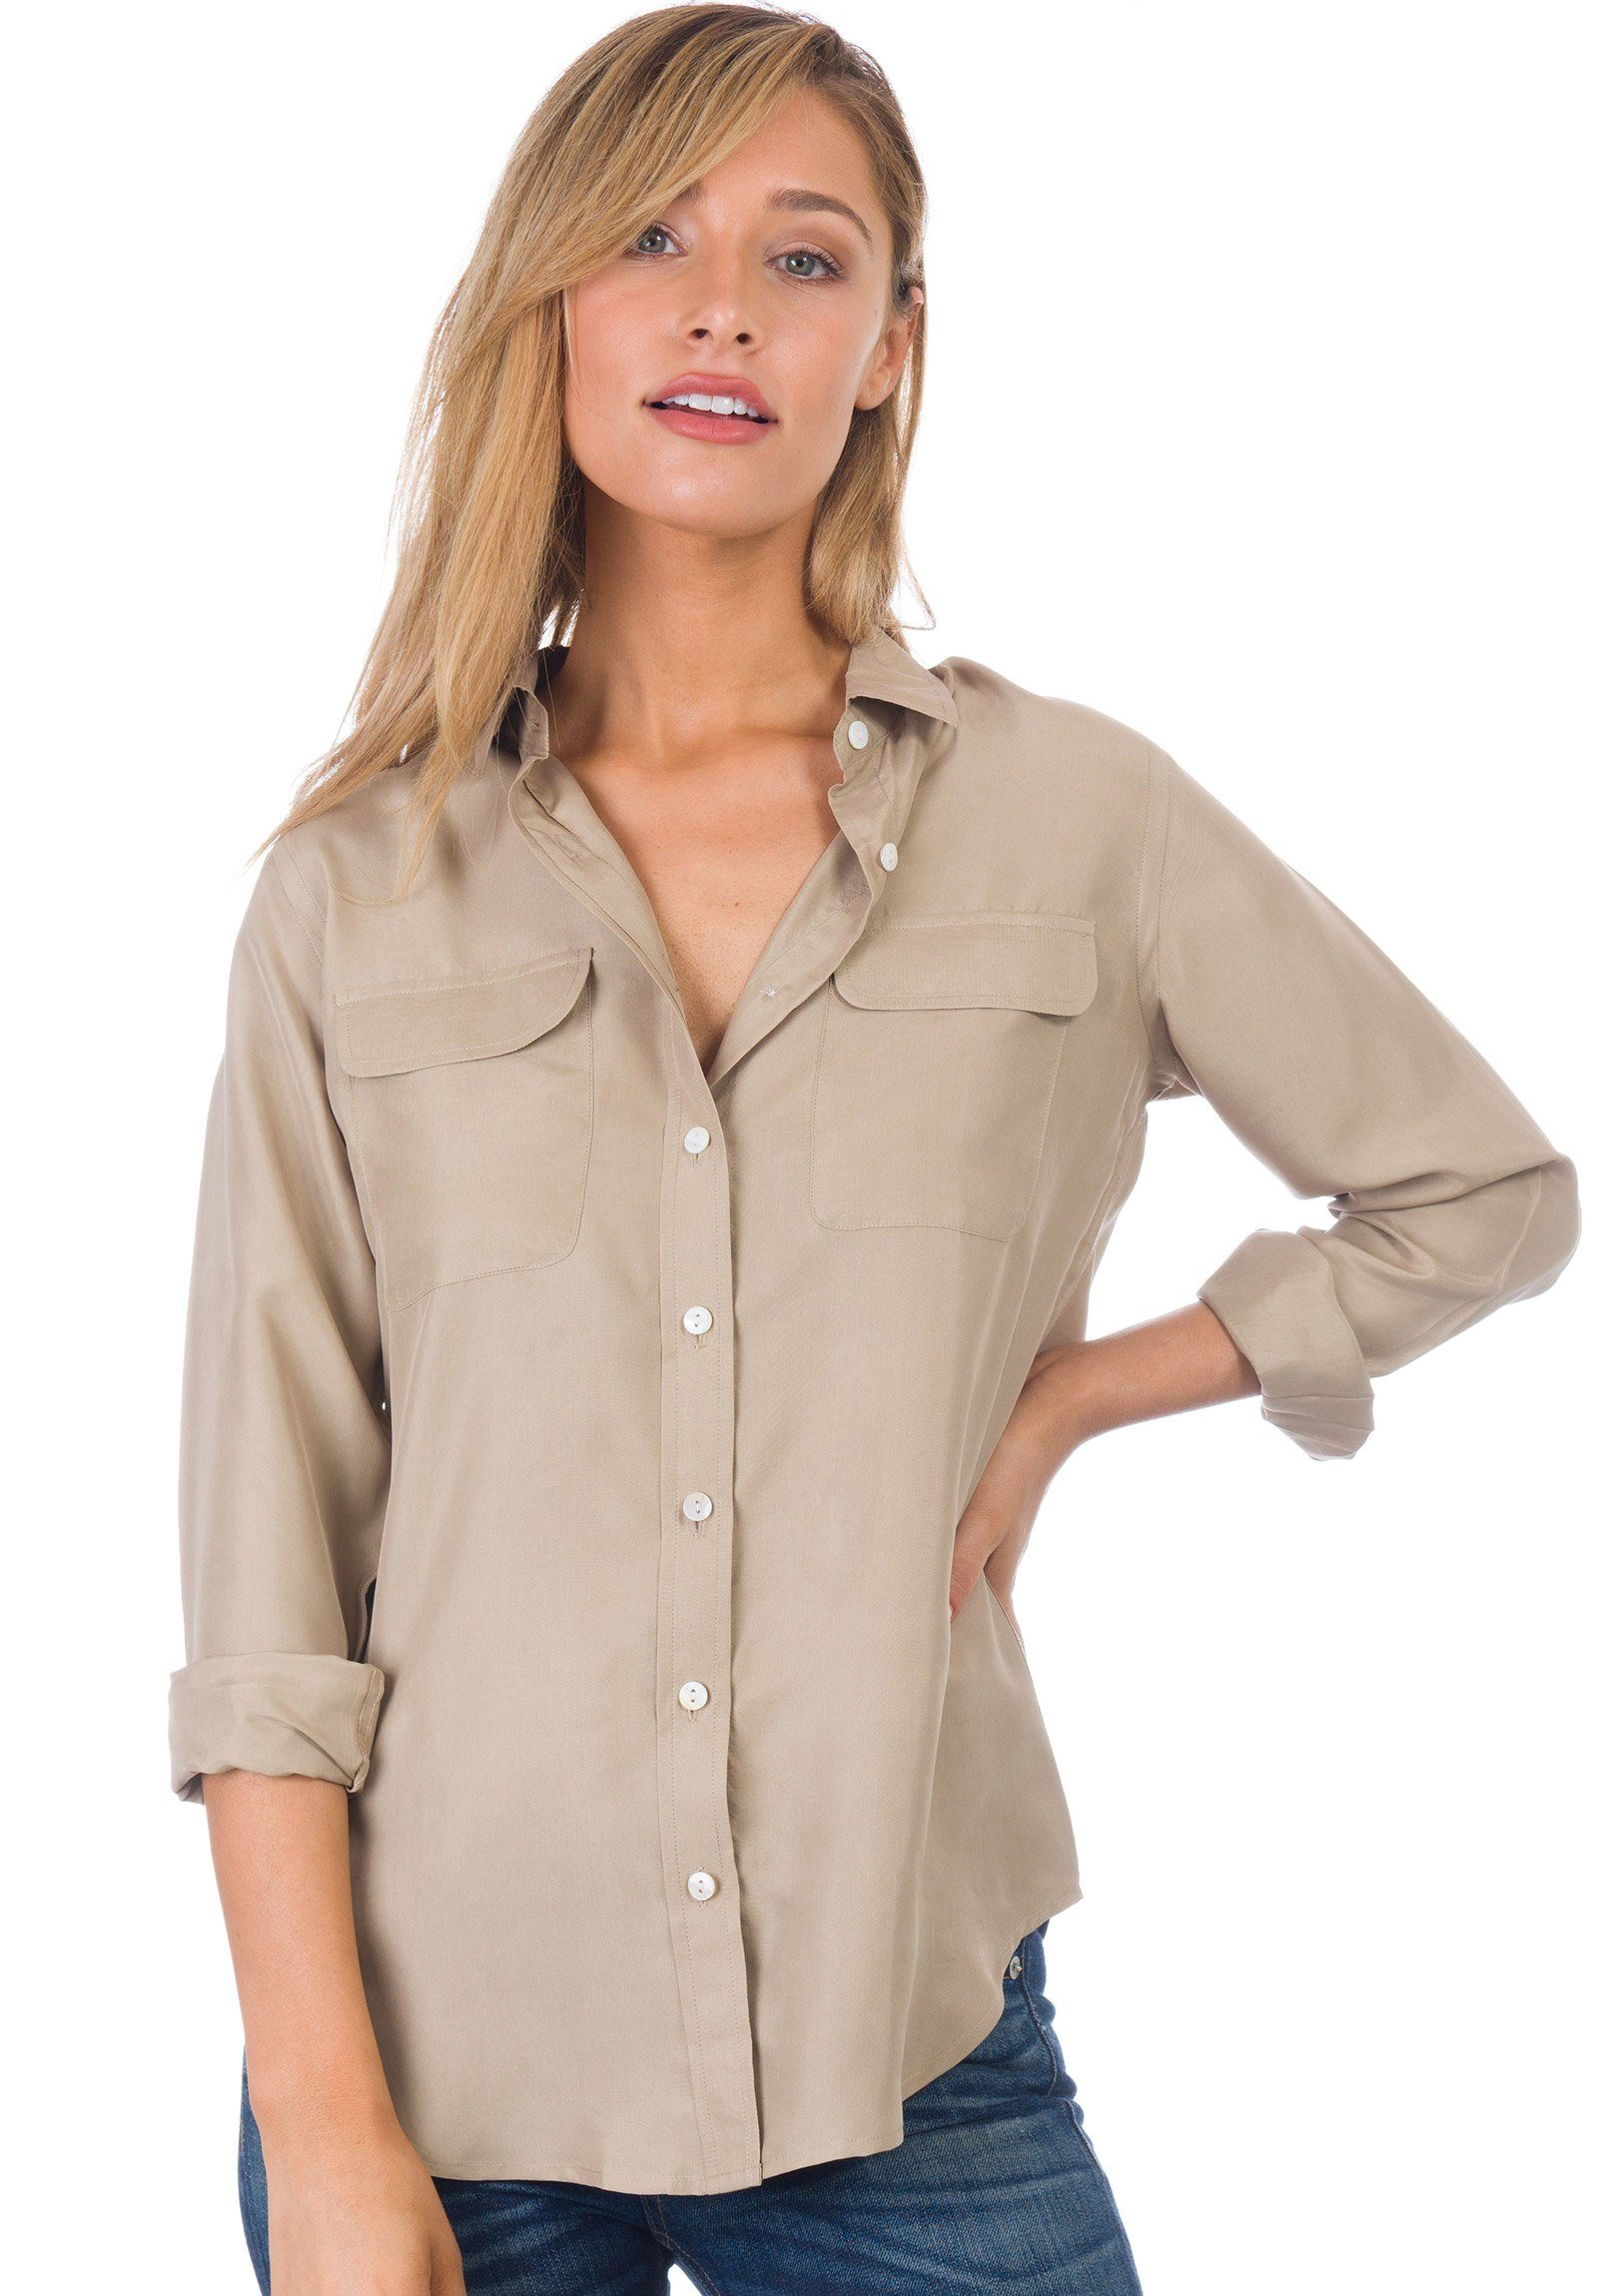 Lete Silk Khaki, Stone Washed Shirt with pockets